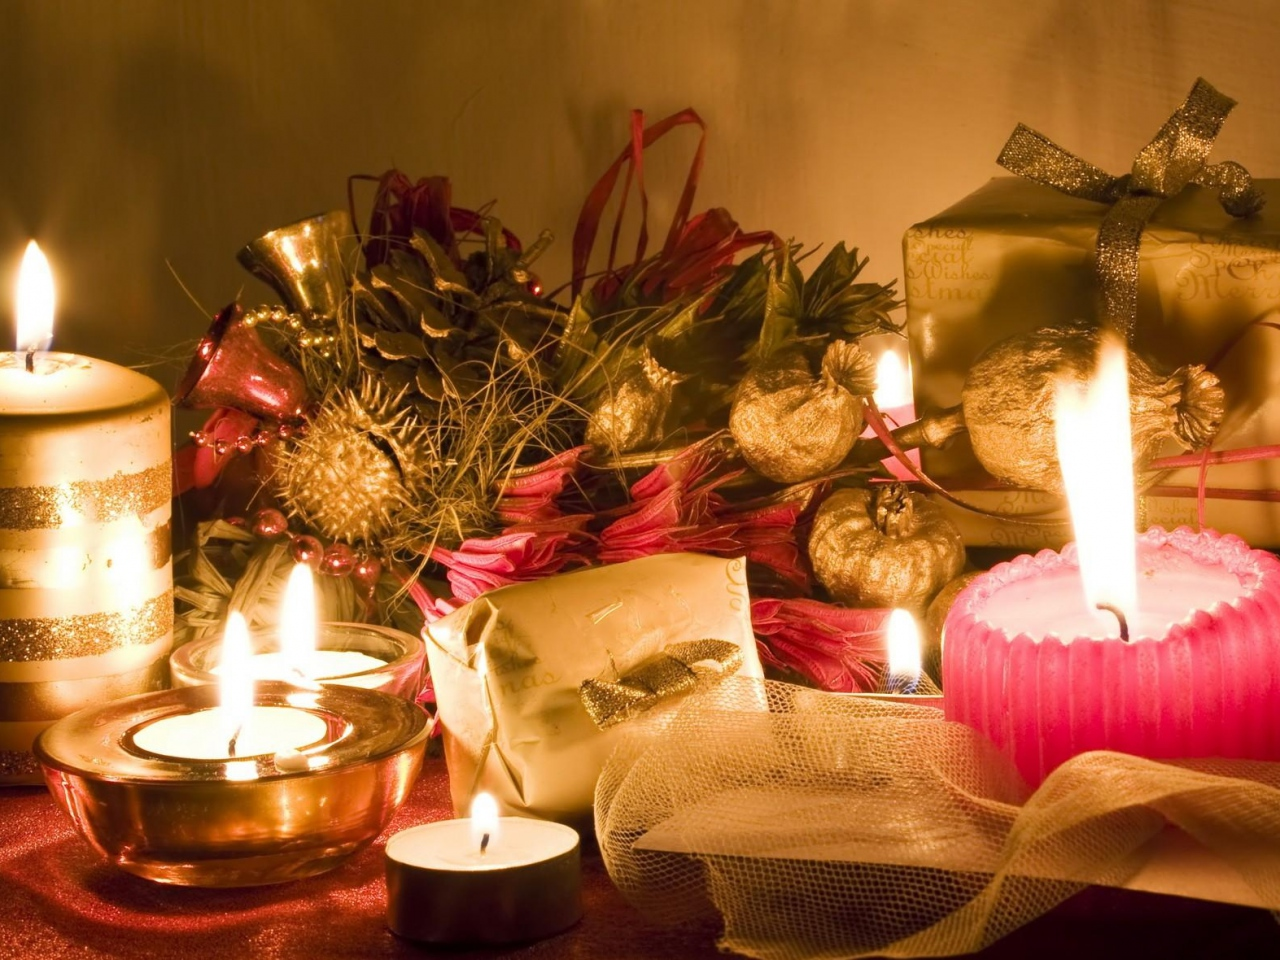 candles-table-gifts-new-year-christmas-mood-holiday